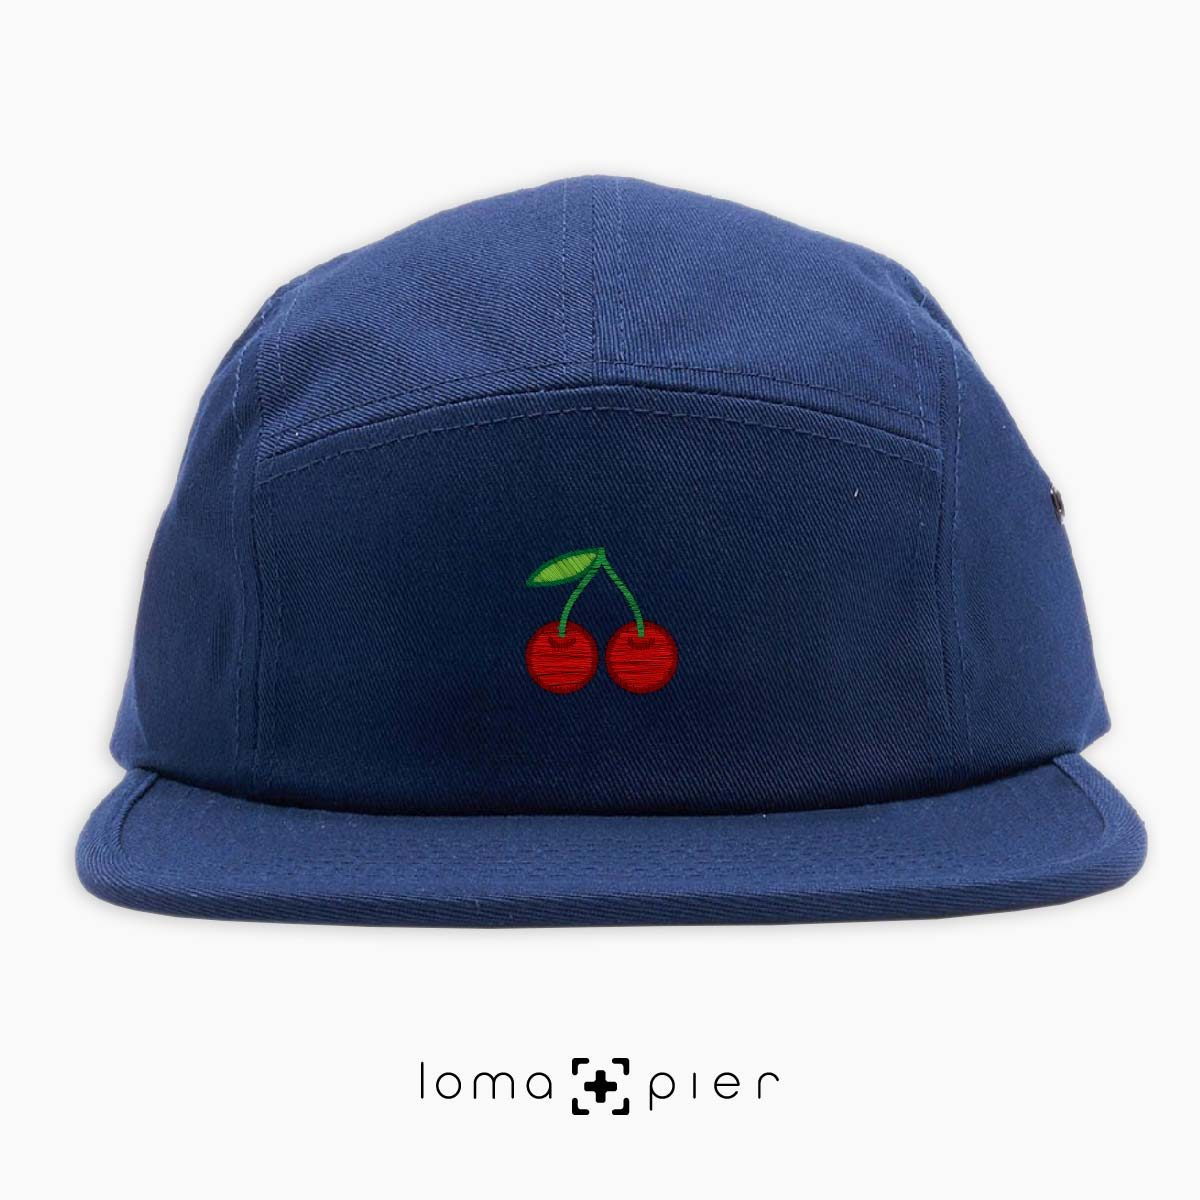 CHERRIES icon embroidered on a navy blue cotton 5-panel hat by loma+pier hat store